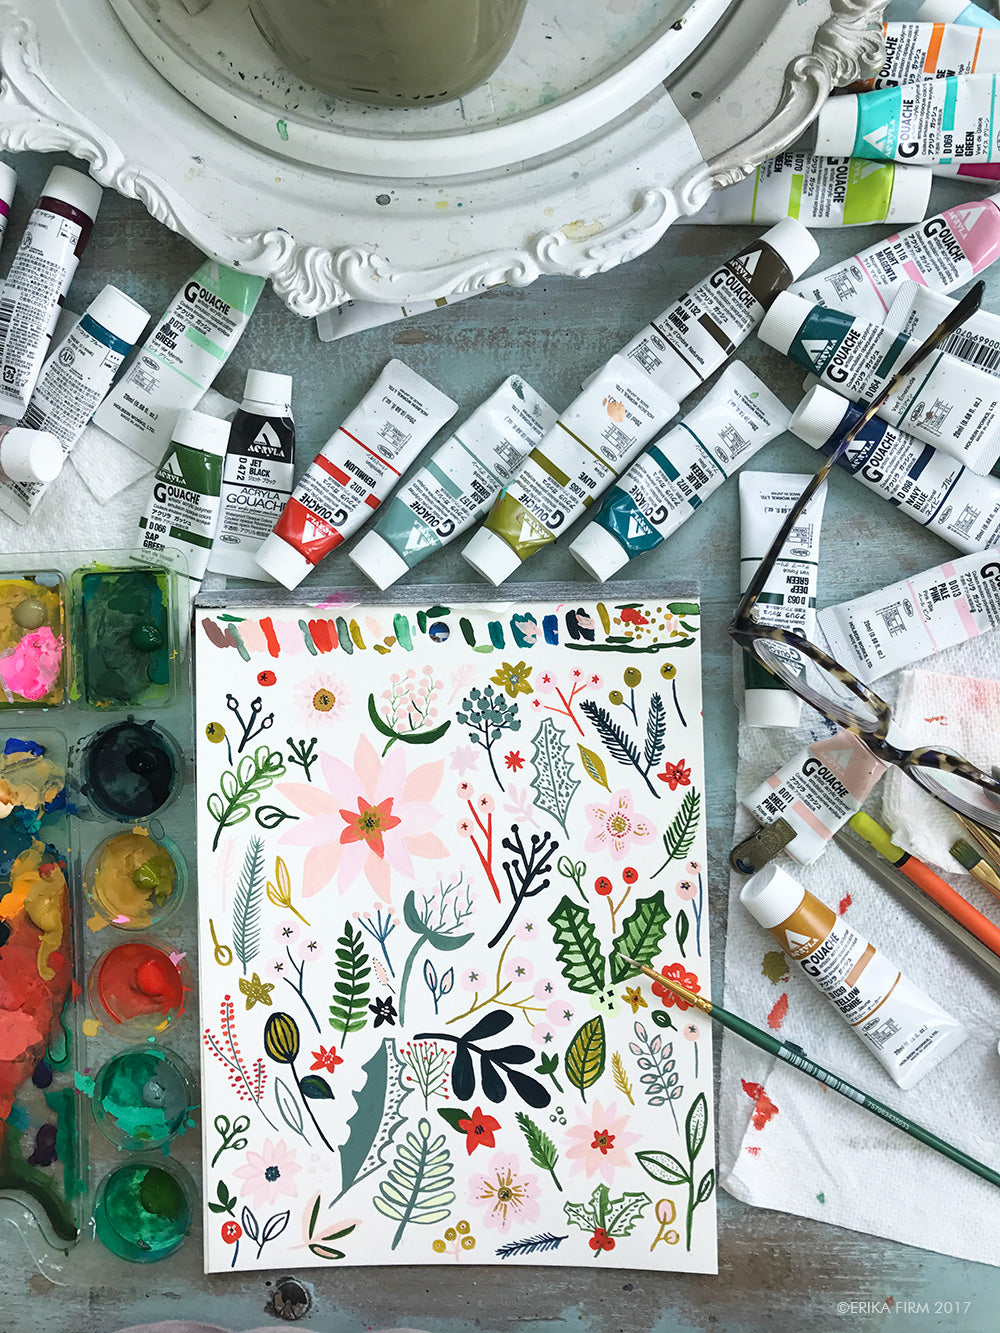 Holiday floral doodles by Erika Firm for holiday 2017